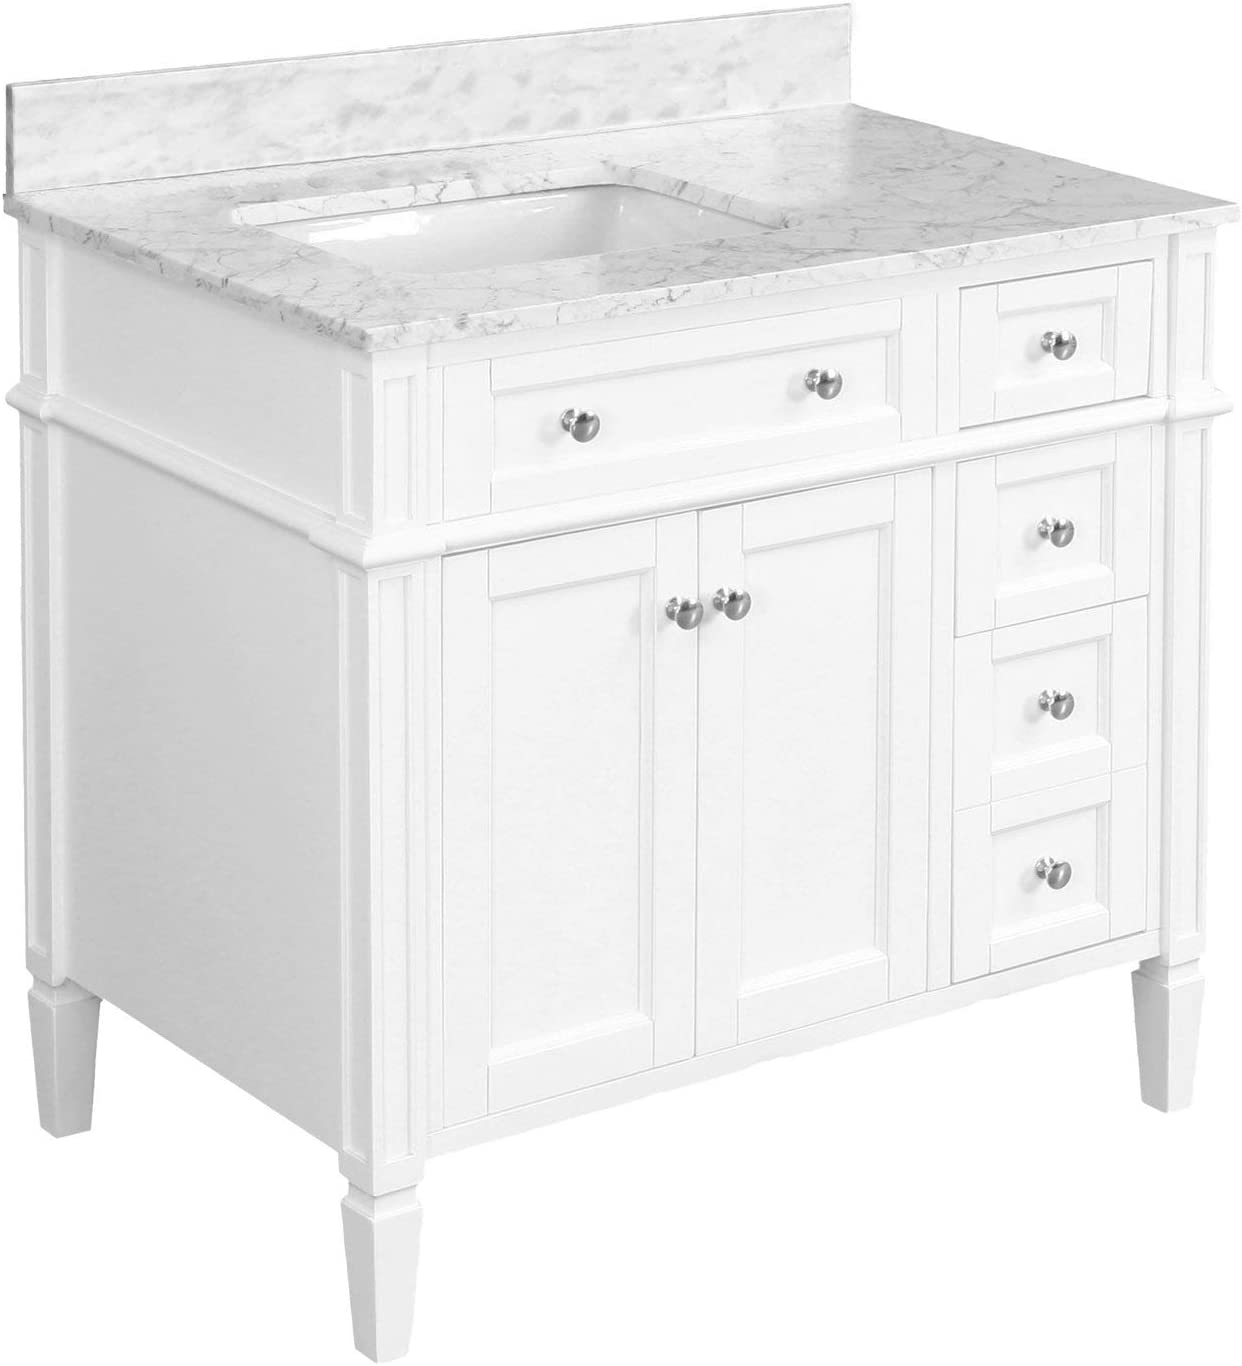 Buy Hailey 36 Inch Bathroom Vanity White Carrara Includes White Cabinet With Authentic Italian Carrara Marble Countertop And White Ceramic Sink Online In Indonesia B09322xhvv